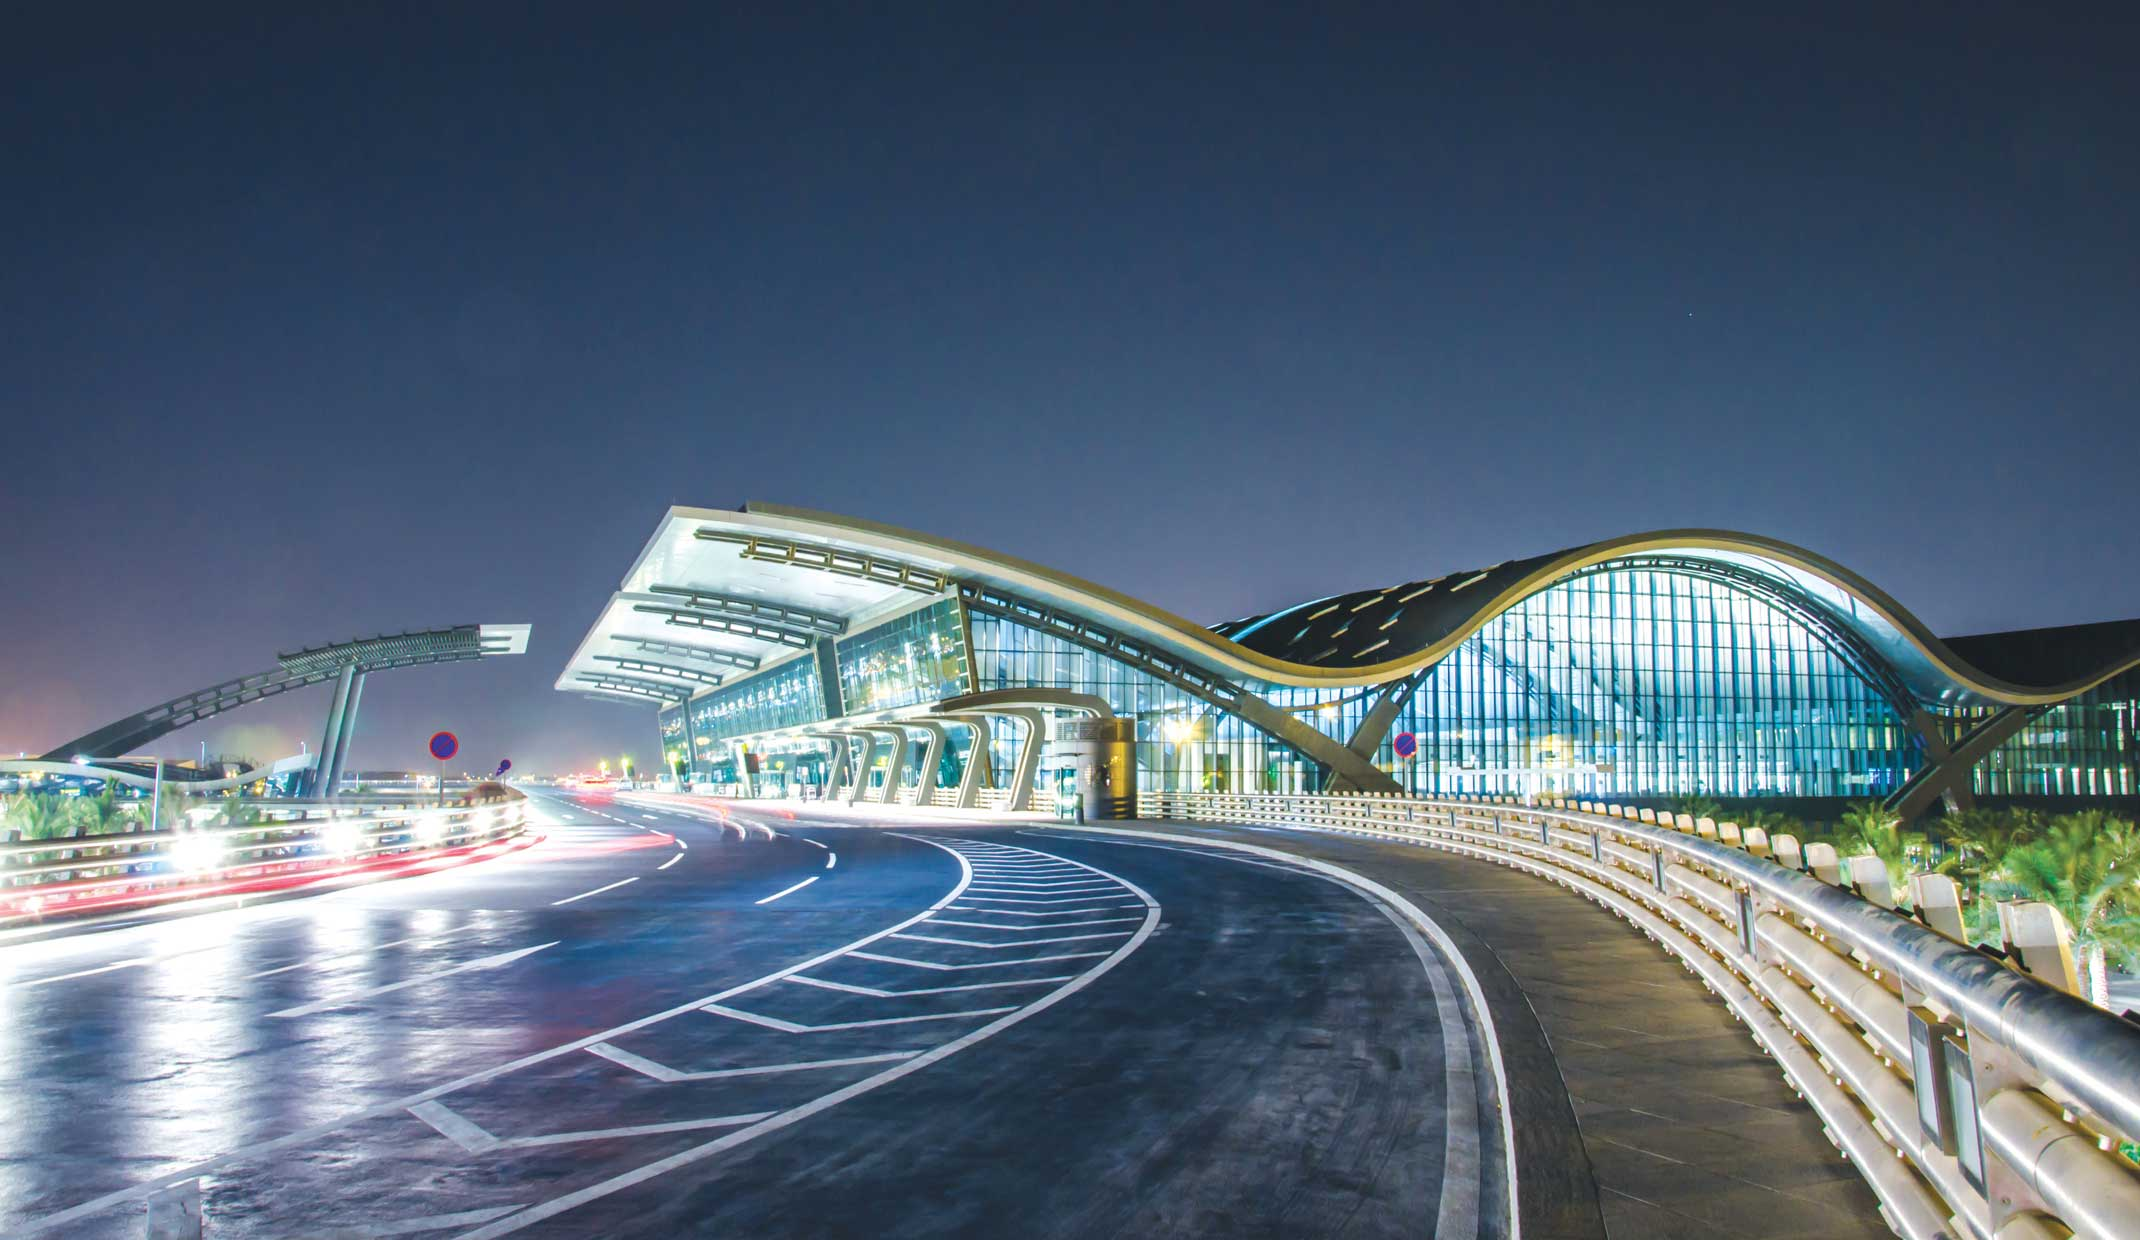 Doha's Hamad International Airport